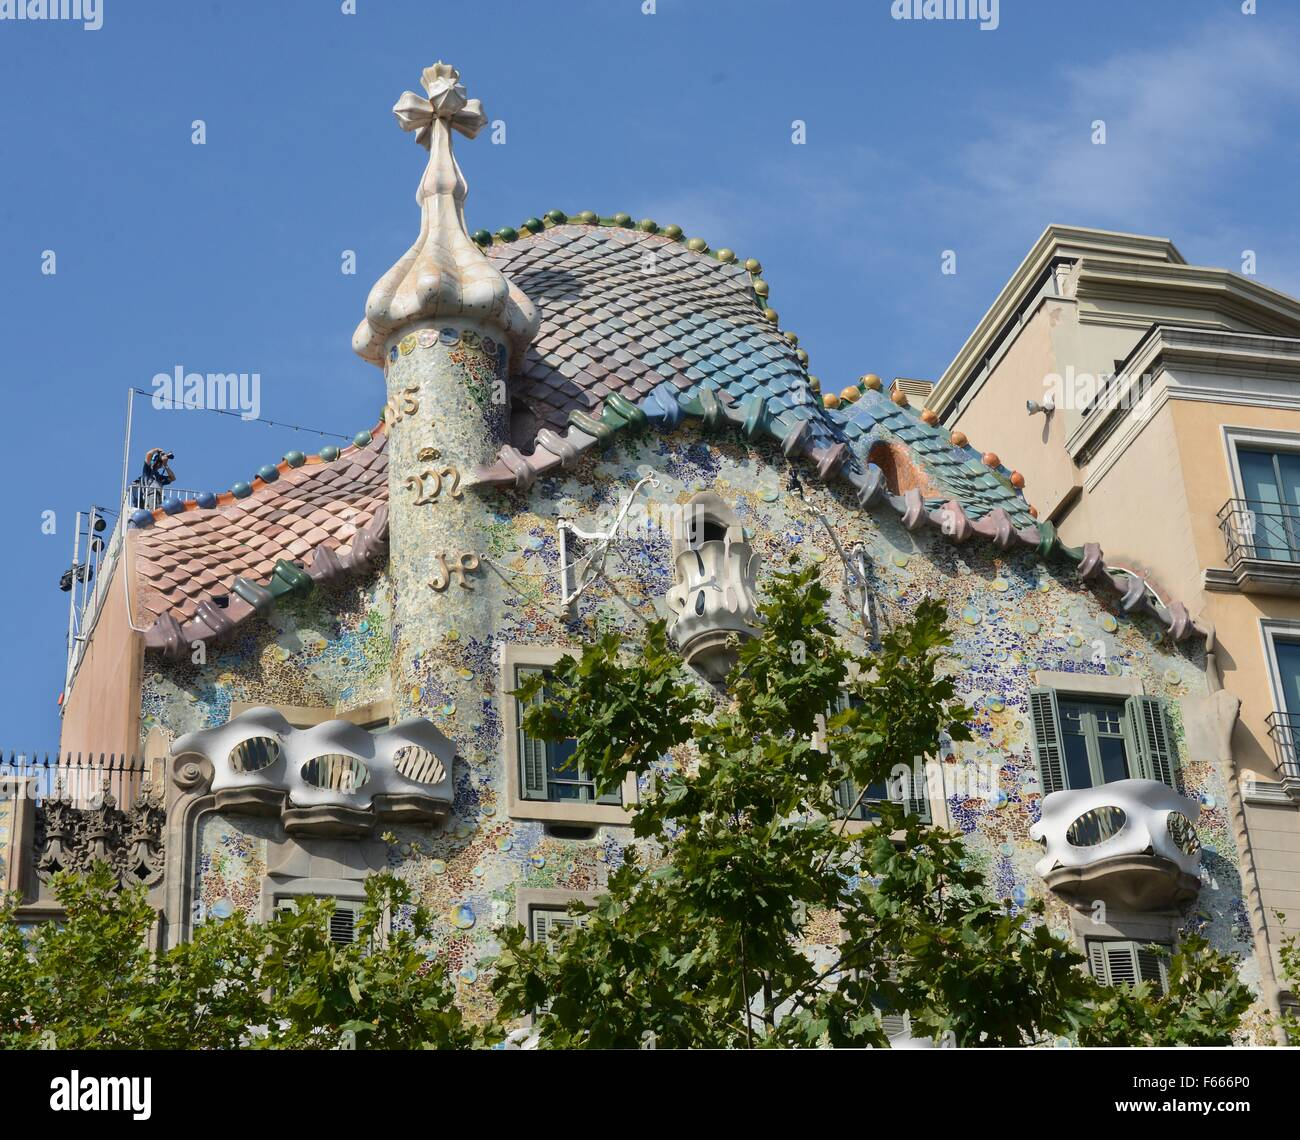 Famous Spanish Architect Antoni Gaudi 1852 1926 Rebuilt The Facade And Interior Of Casa Batllo Under Contract From Textile Manufacturer Josp I